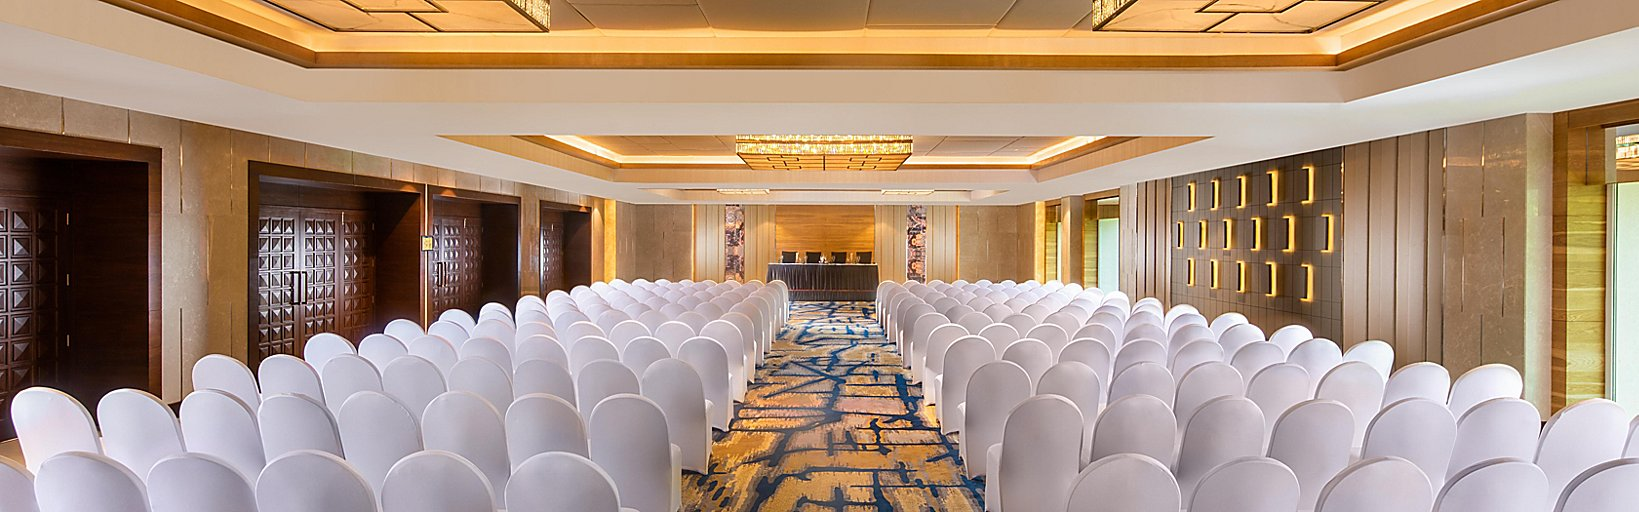 Holiday Inn Agra Mg Road Hotel Groups Meeting Rooms Available